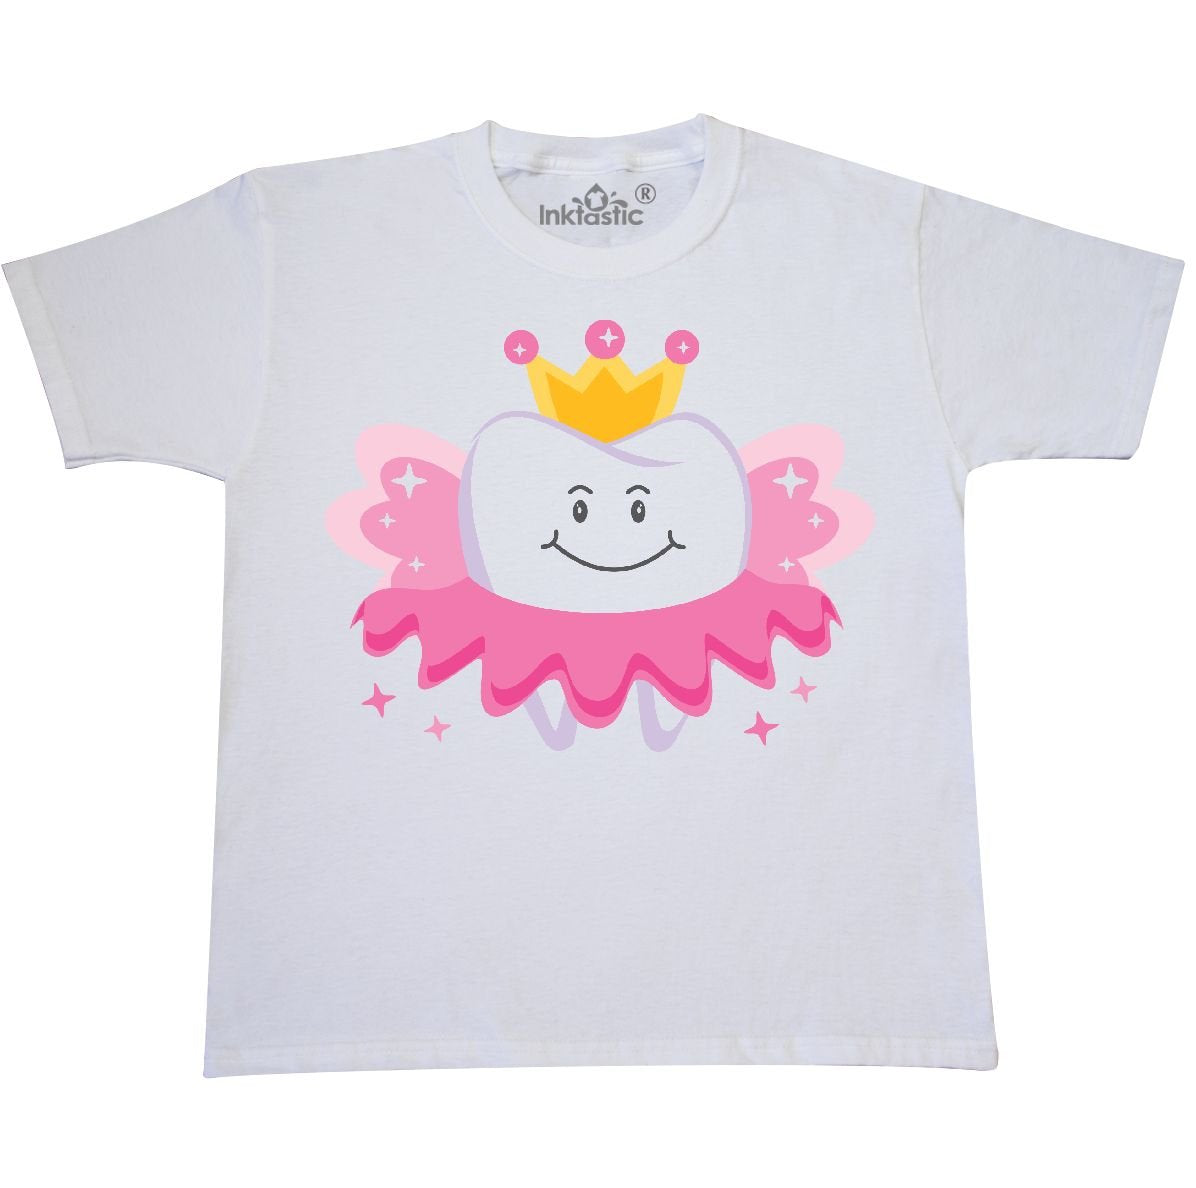 inktastic - Tooth Fairy Girls Pink Youth T-Shirt Youth Small (6-8) White f7db